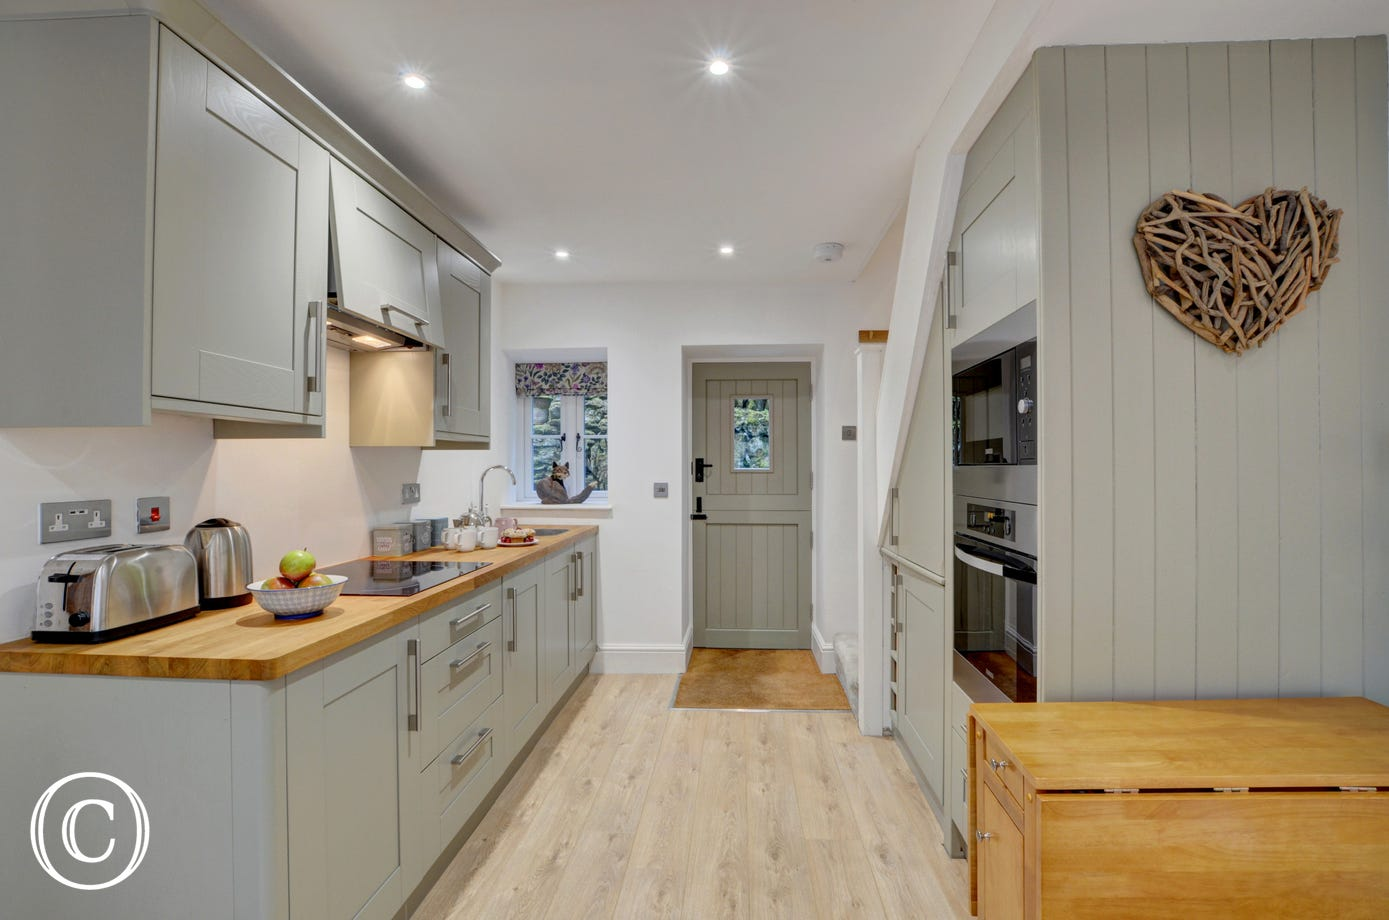 A stylish kitchen area has been well designed and offers all you need to enjoy preparing meals